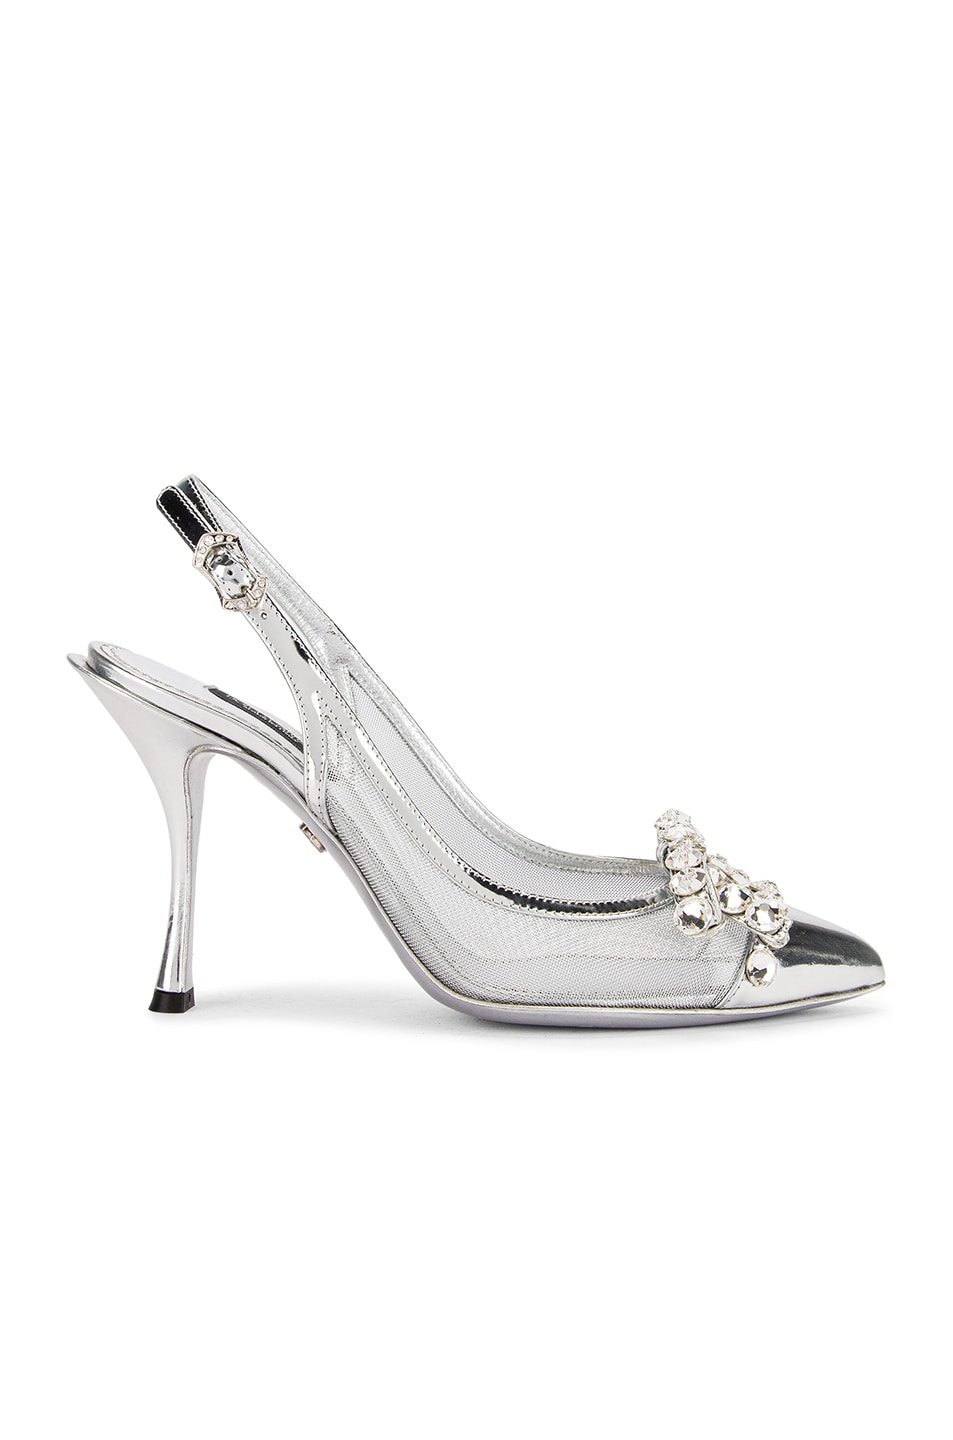 Image 1 of Dolce & Gabbana Bow Slingback Heels in Silver